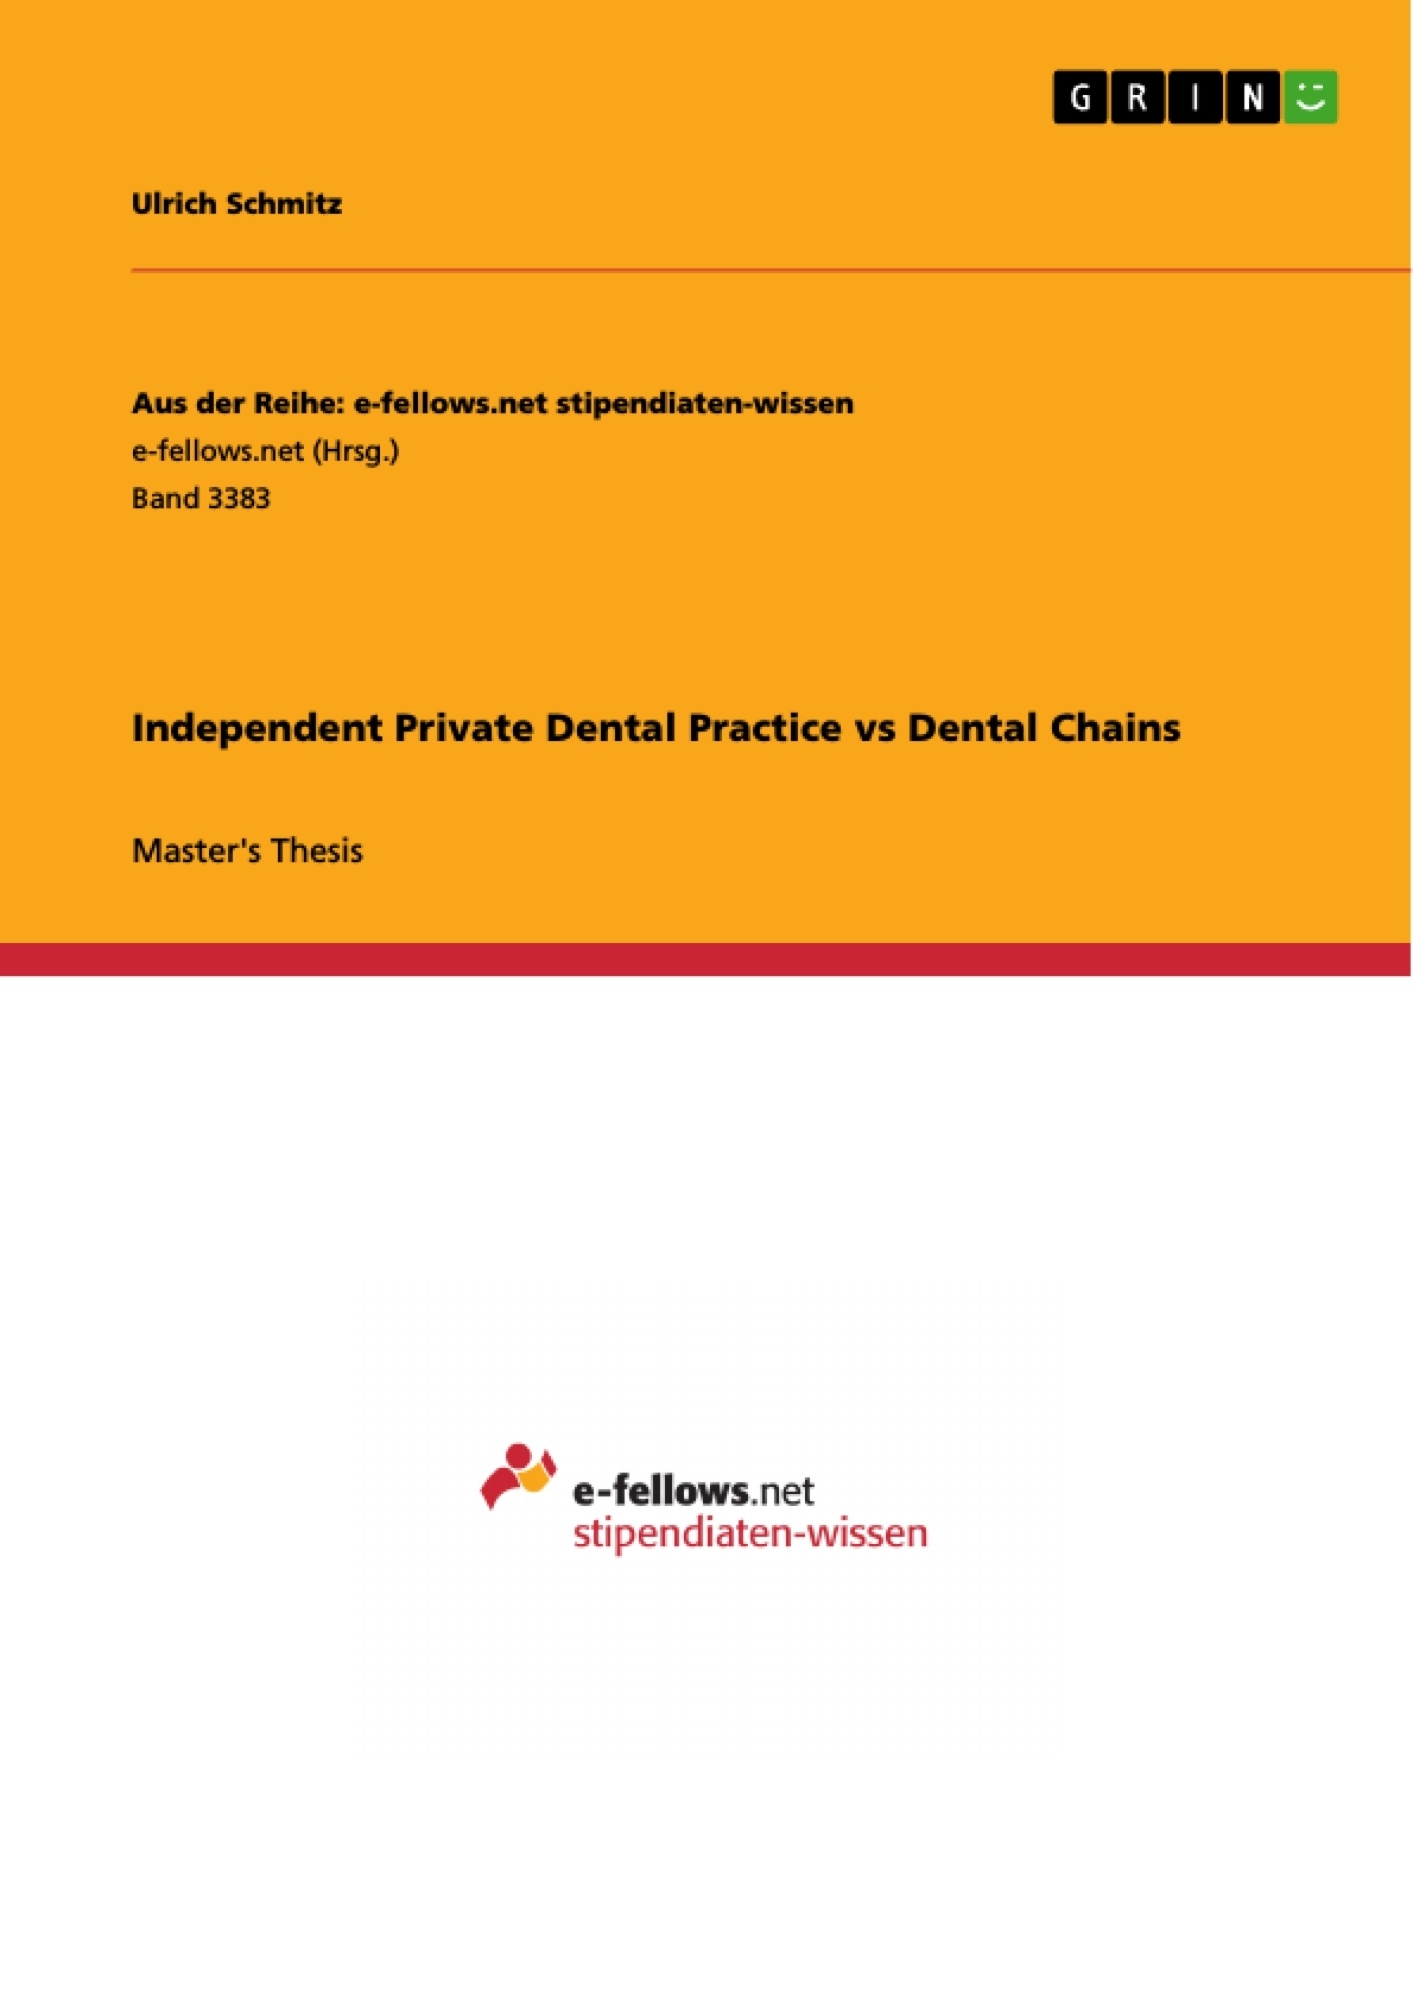 Title: Independent Private Dental Practice vs Dental Chains